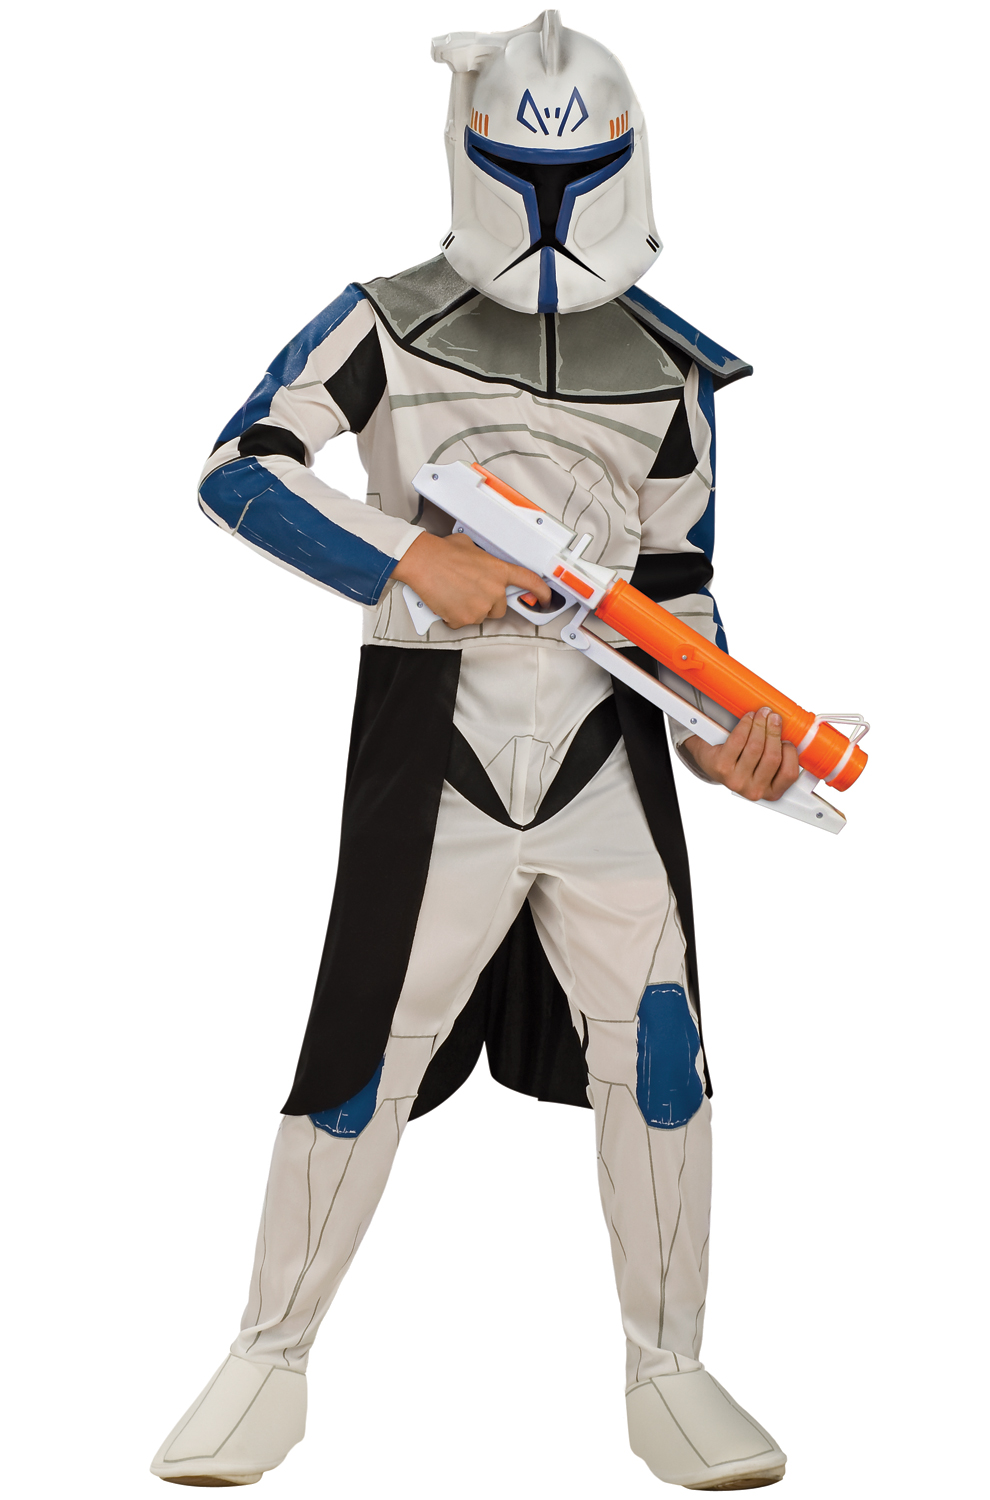 Click Here to buy Star Wars Clone Wars Clone Trooper Captain Rex Kids Costume from Pure Costumes